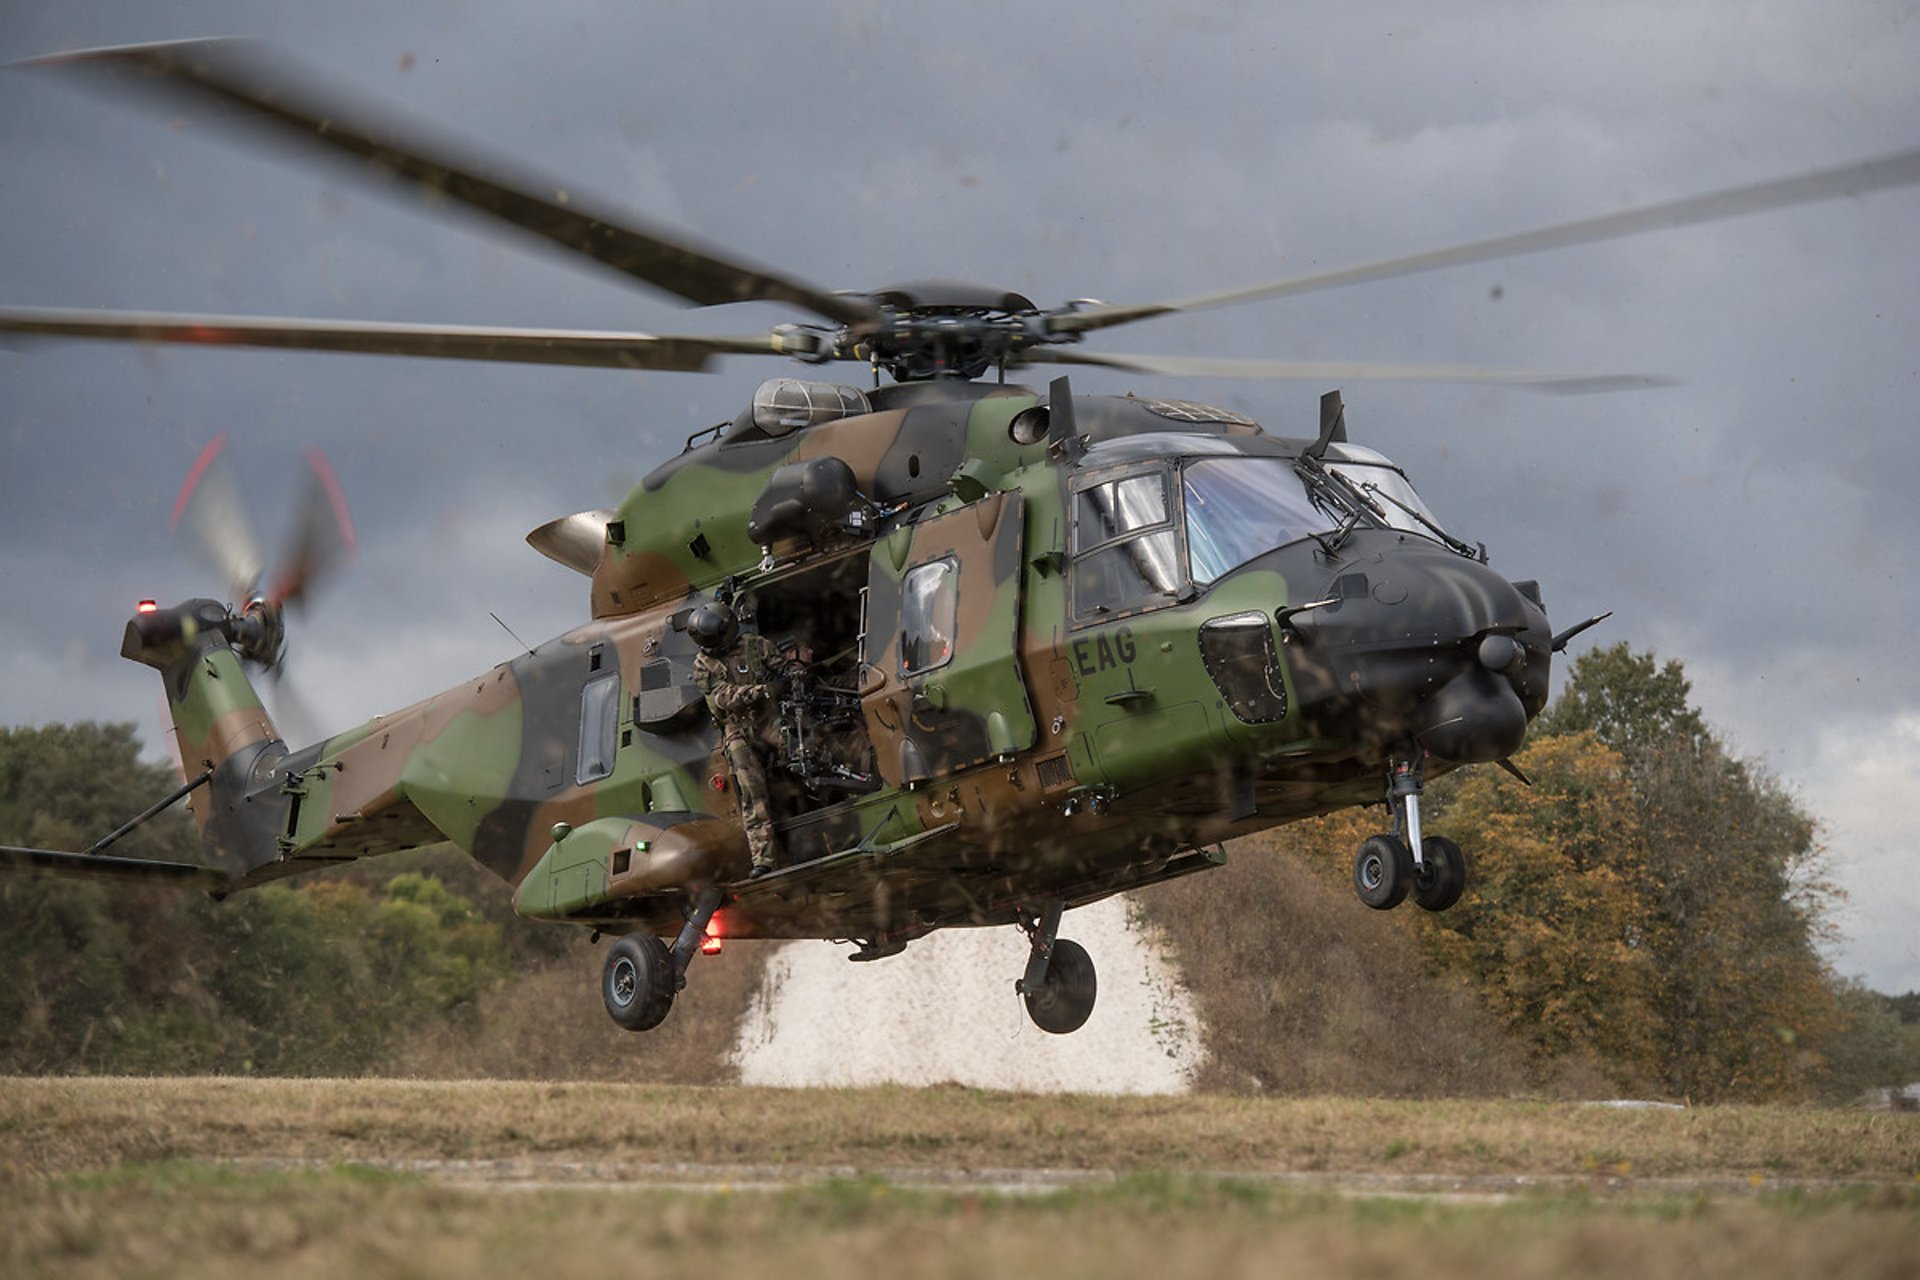 The NH90 military helicopter was designed to meet the most stringent NATO standards.